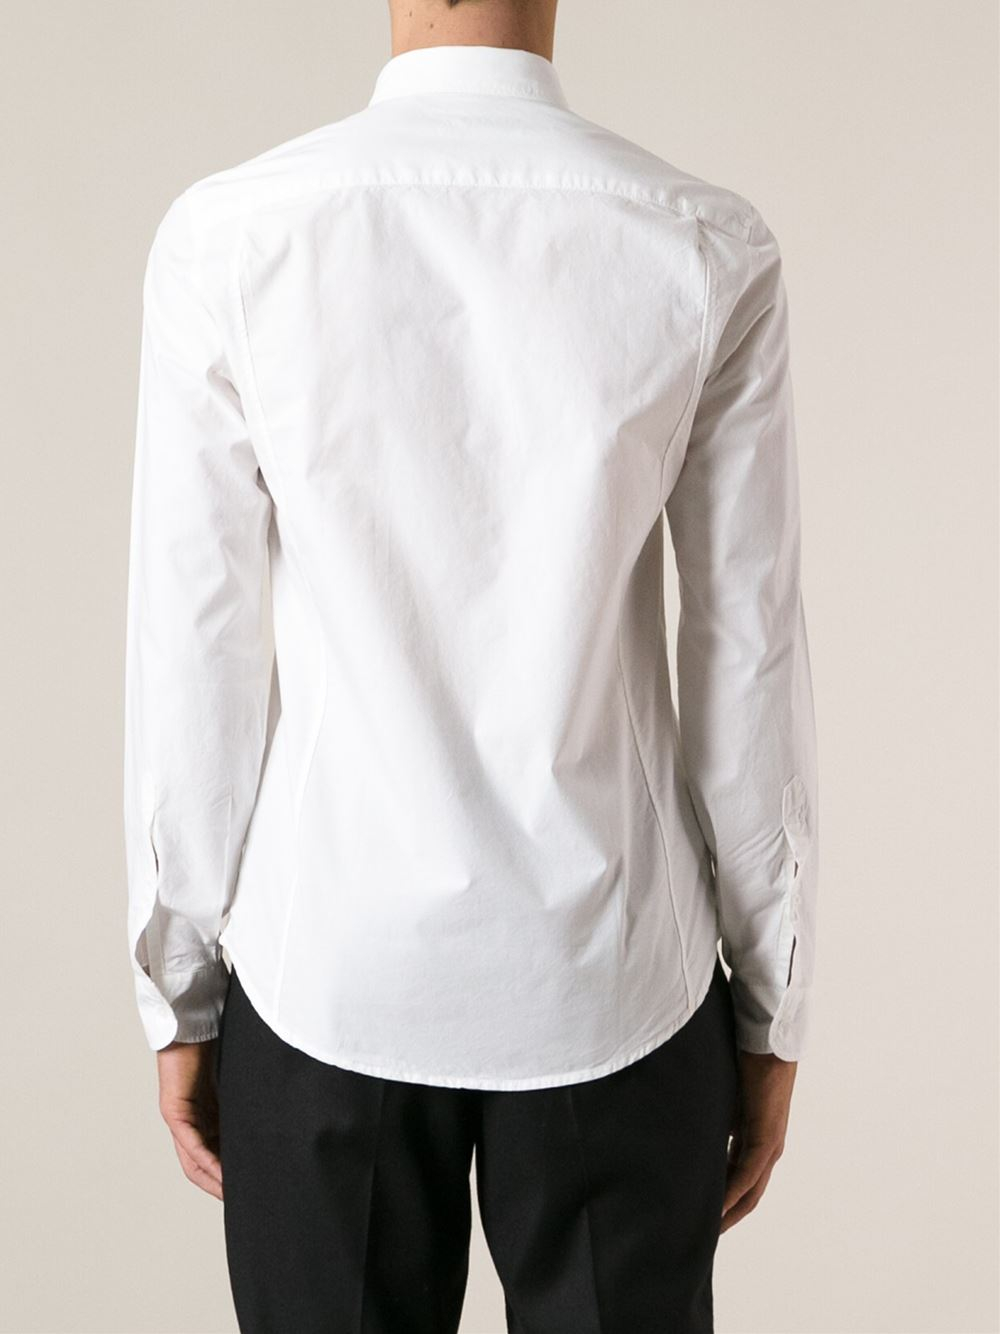 KENZO Button Down Collar Shirt in White for Men